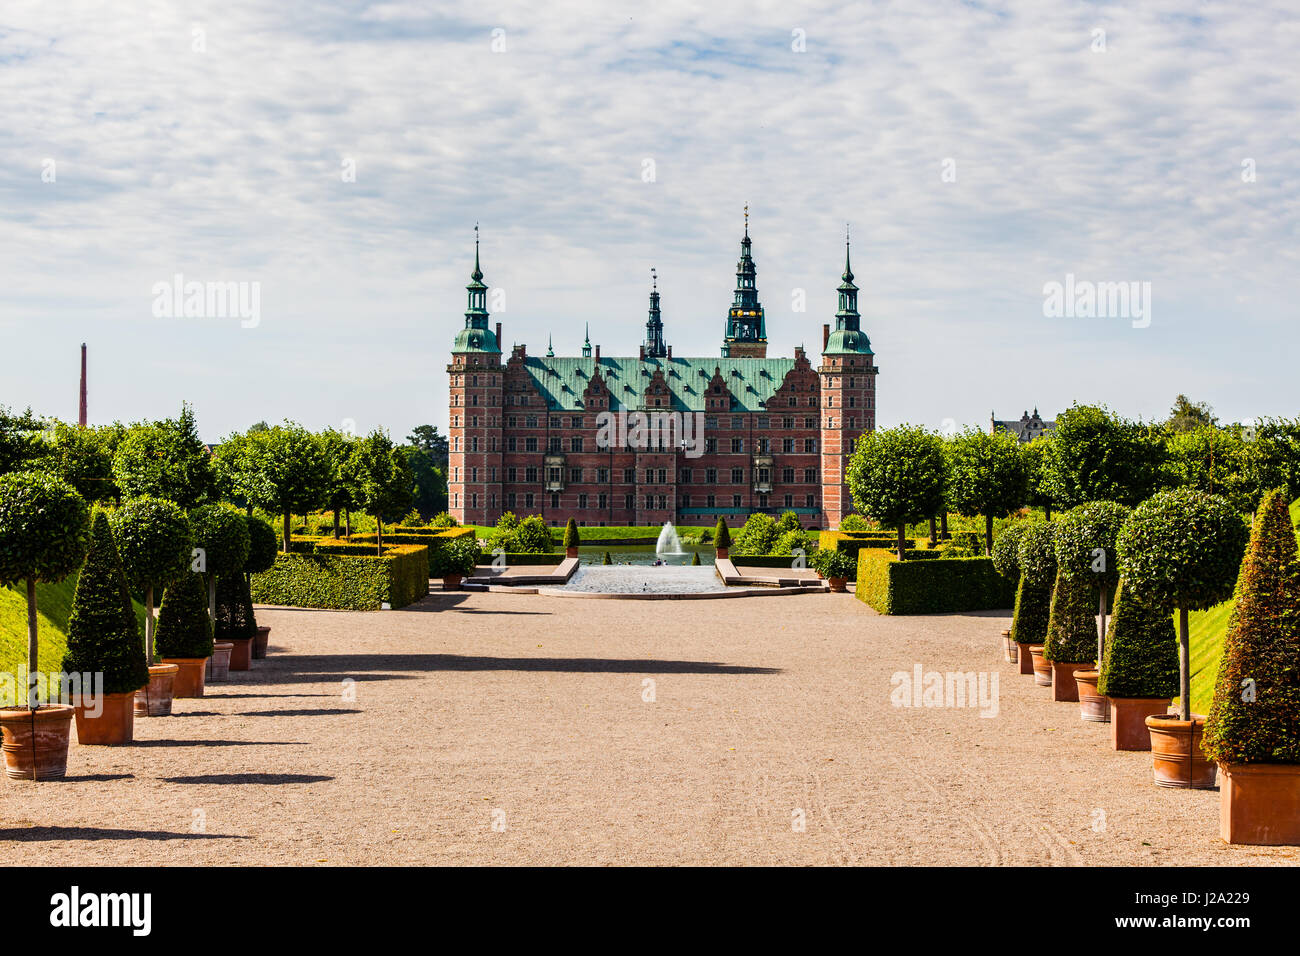 The majestic castle Frederiksborg Castle seen from the beautiful park area, - Stock Image